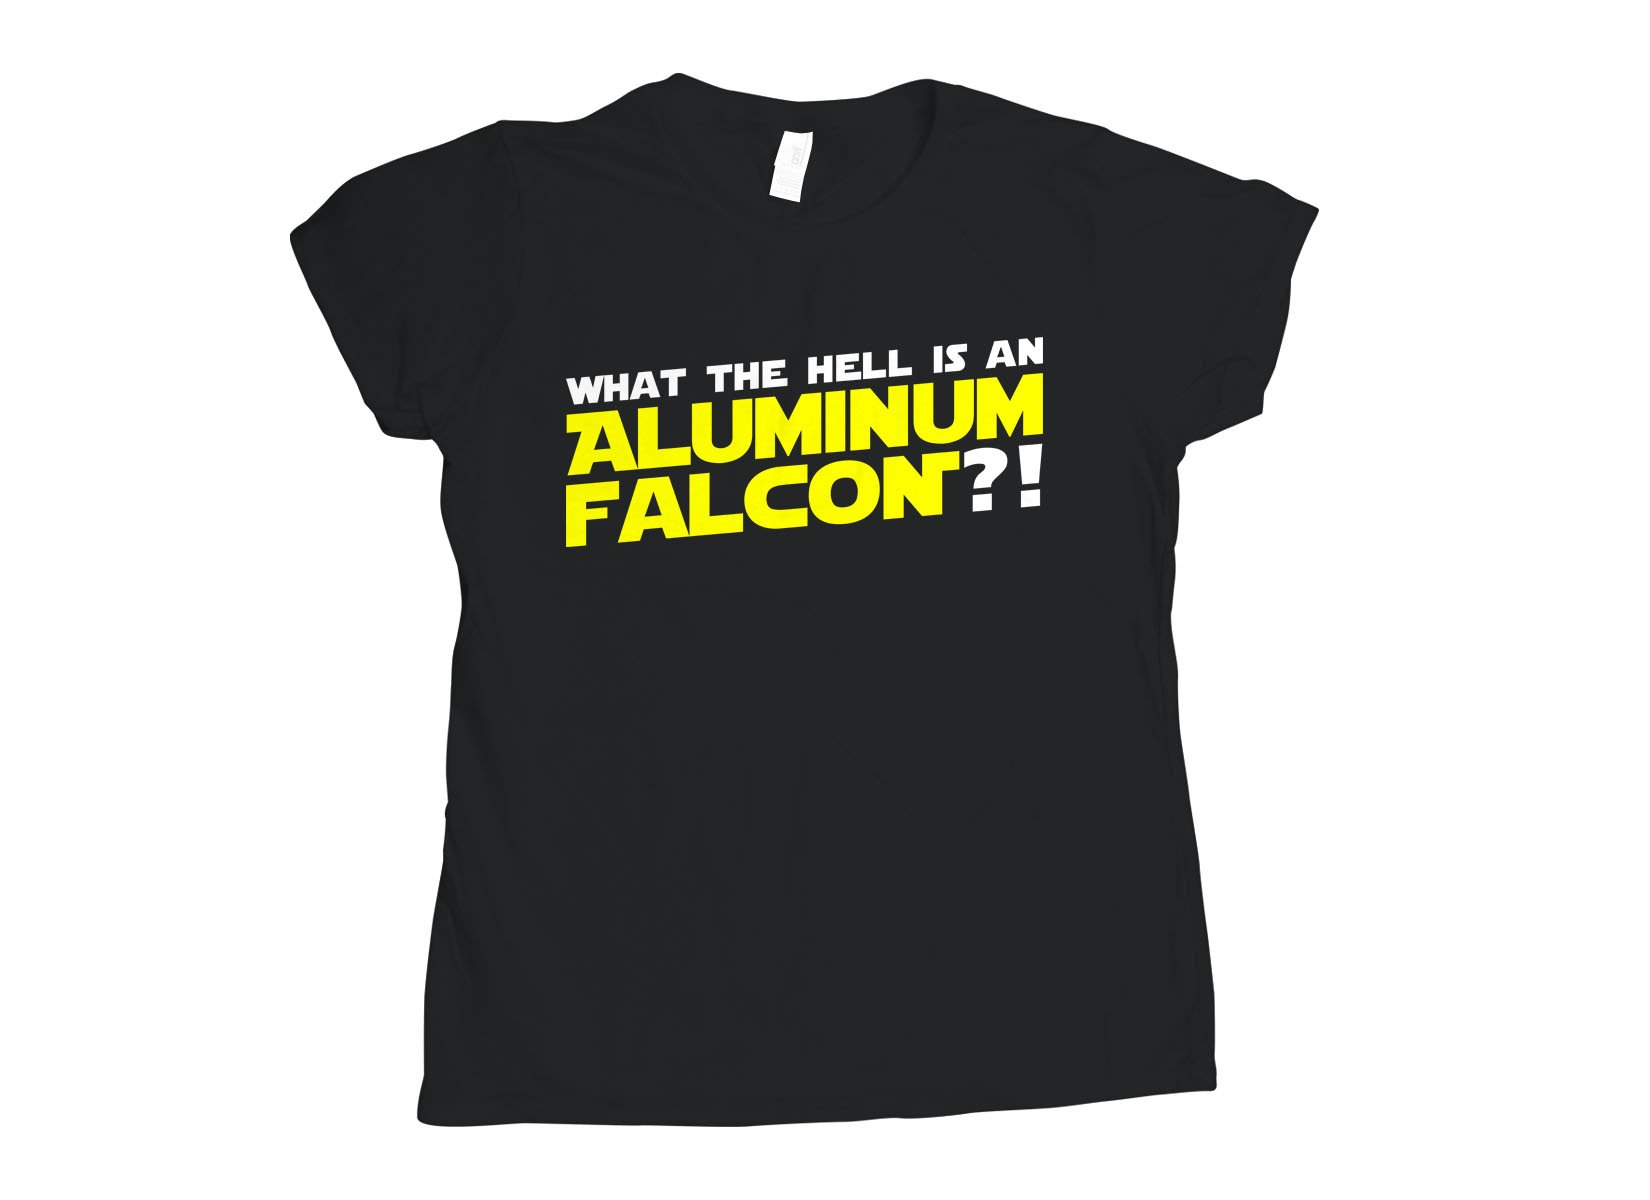 Aluminum Falcon on Womens T-Shirt